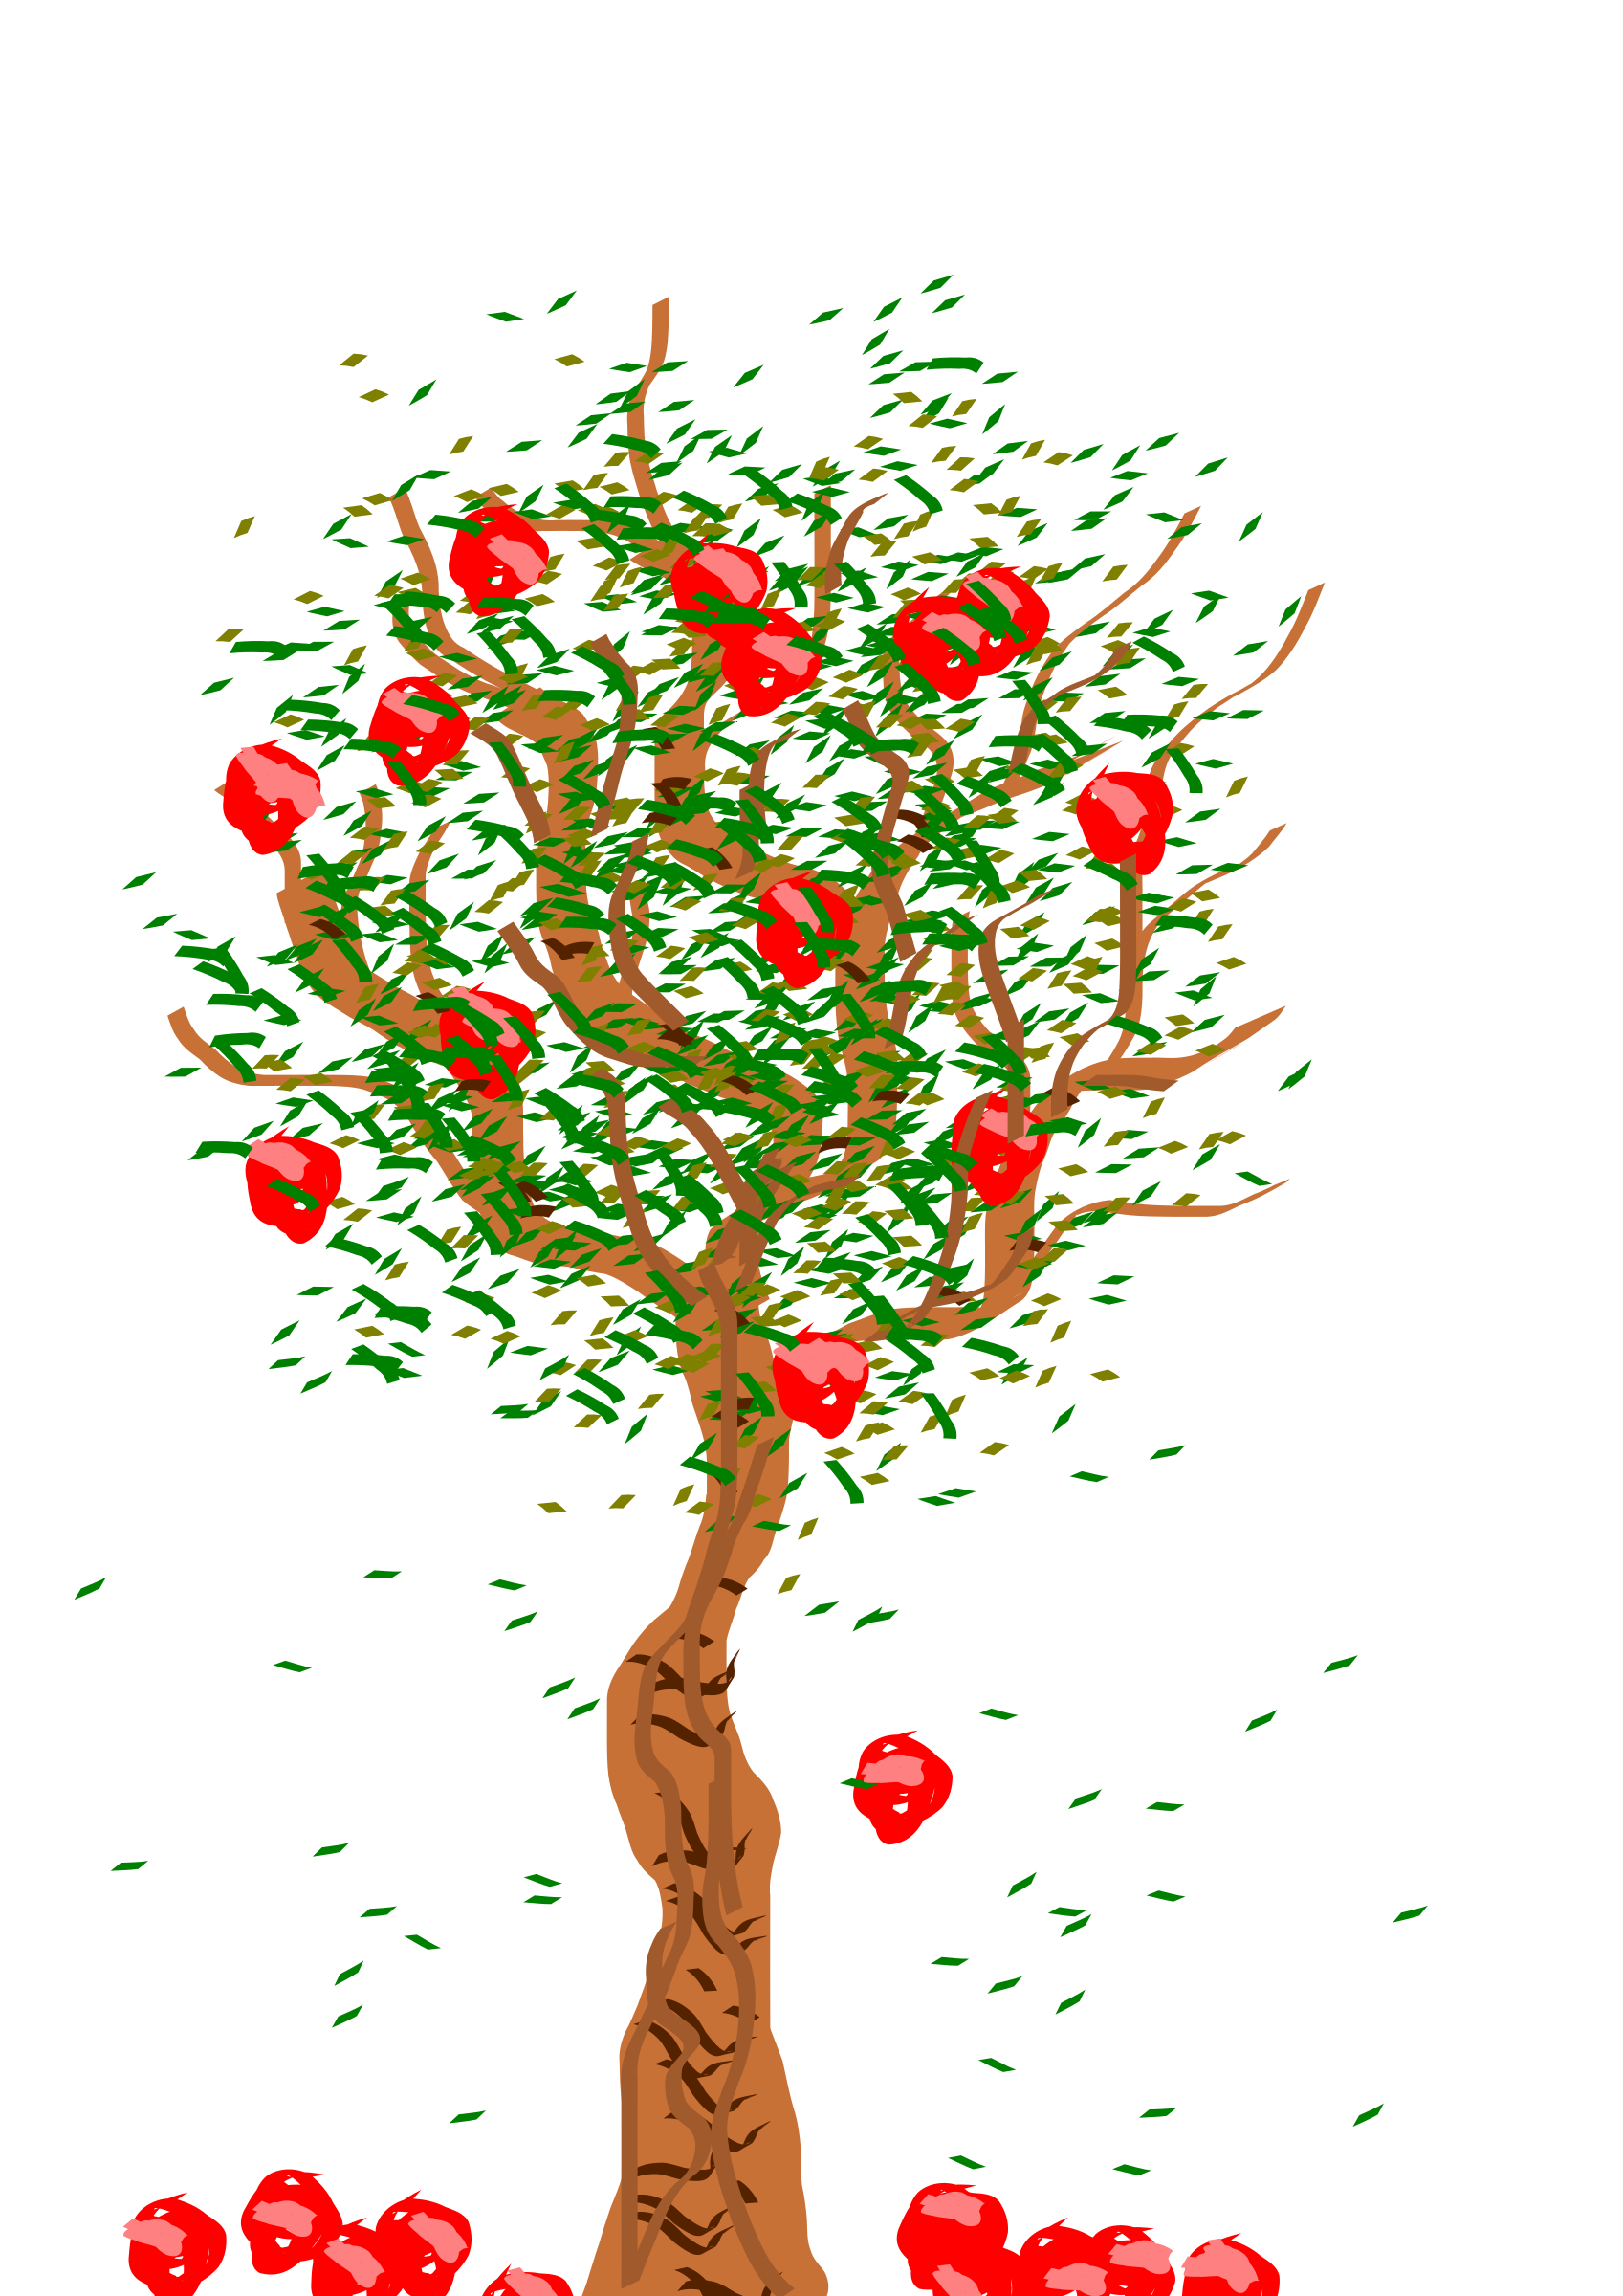 Fall apple trees clipart clipart royalty free download 28+ Collection of Apple Falling From Tree Clipart | High quality ... clipart royalty free download